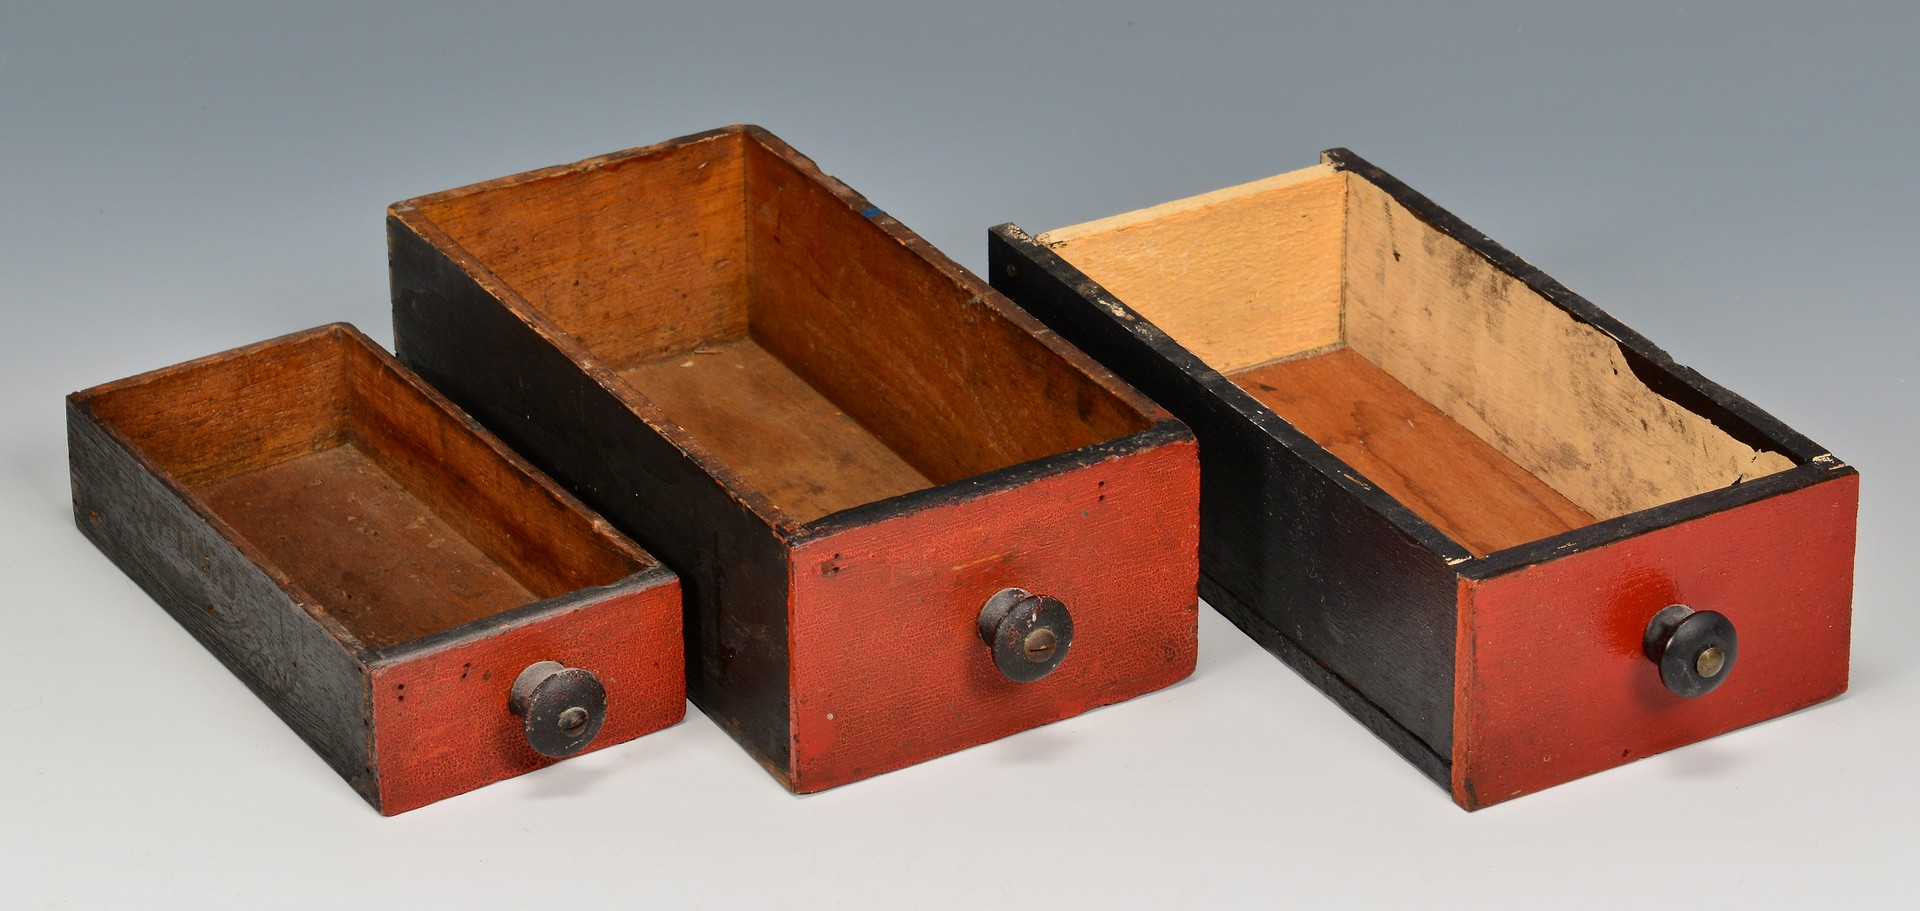 Lot 686: 2 Painted Miniature Spice/Apothecary Cabinets